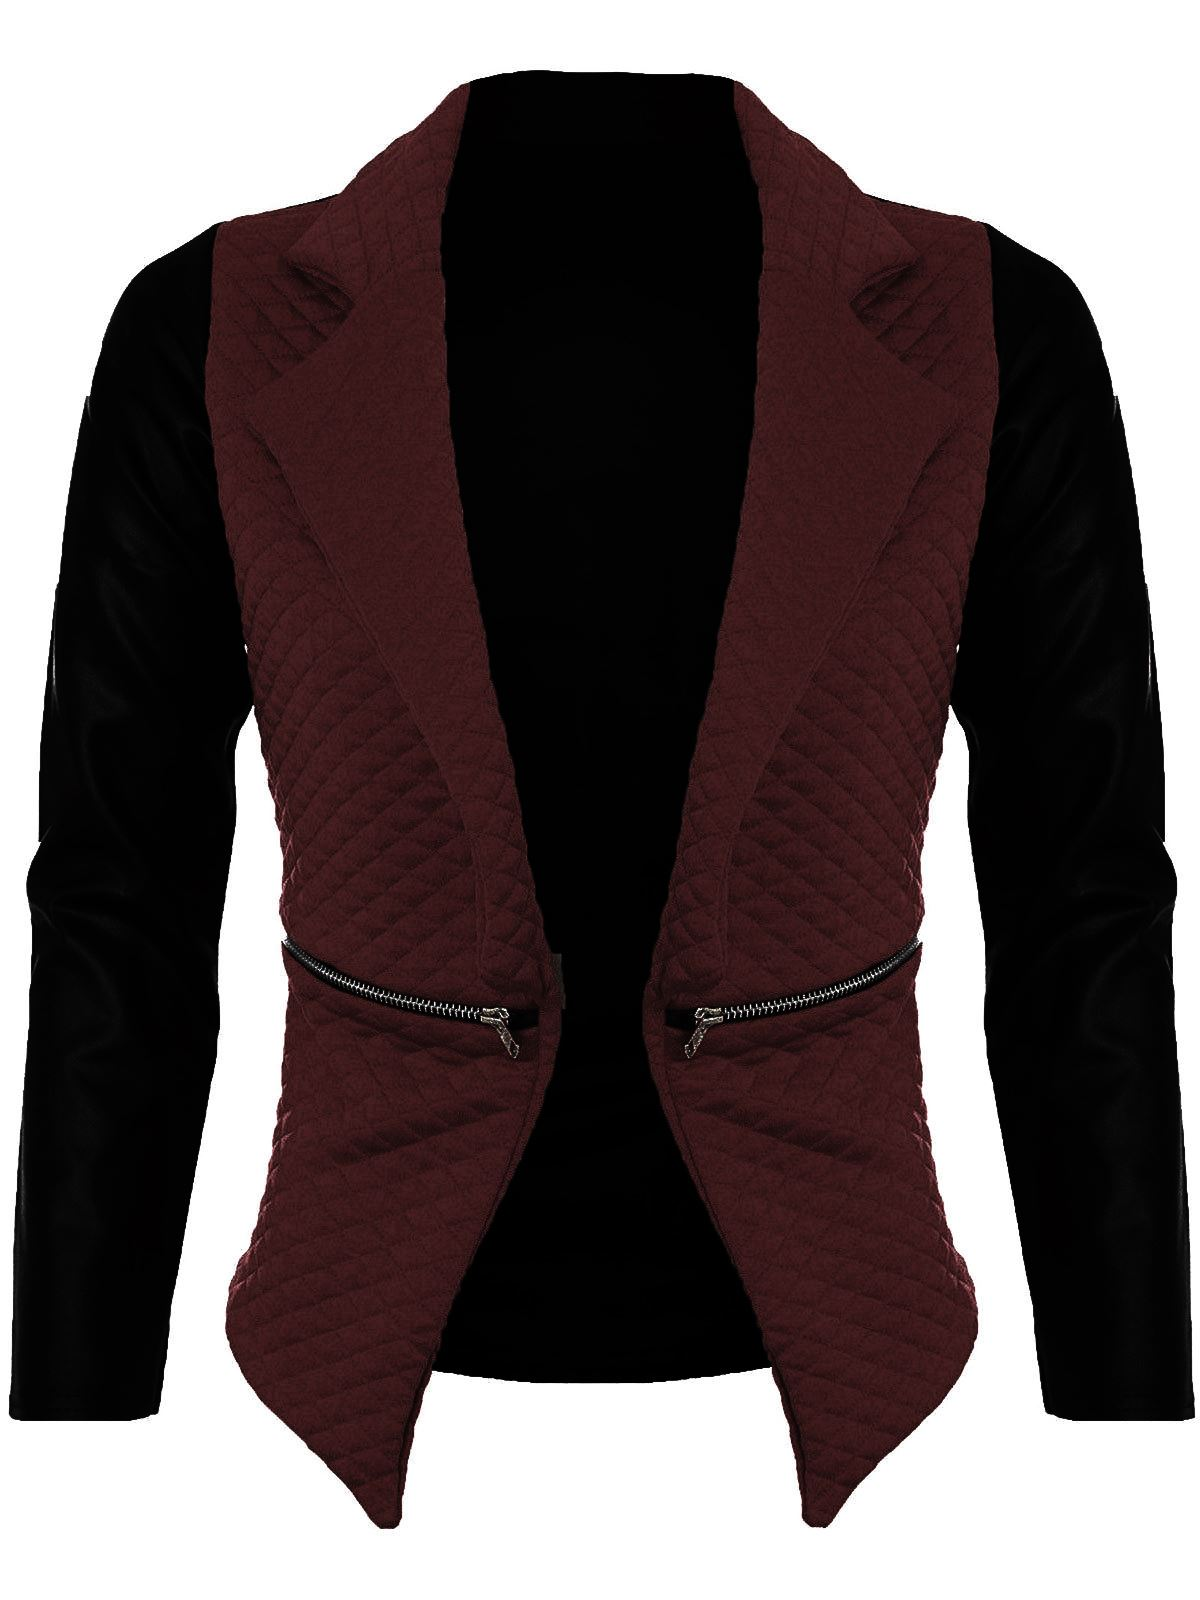 Find great deals on eBay for leather waterfall jacket. Shop with confidence.